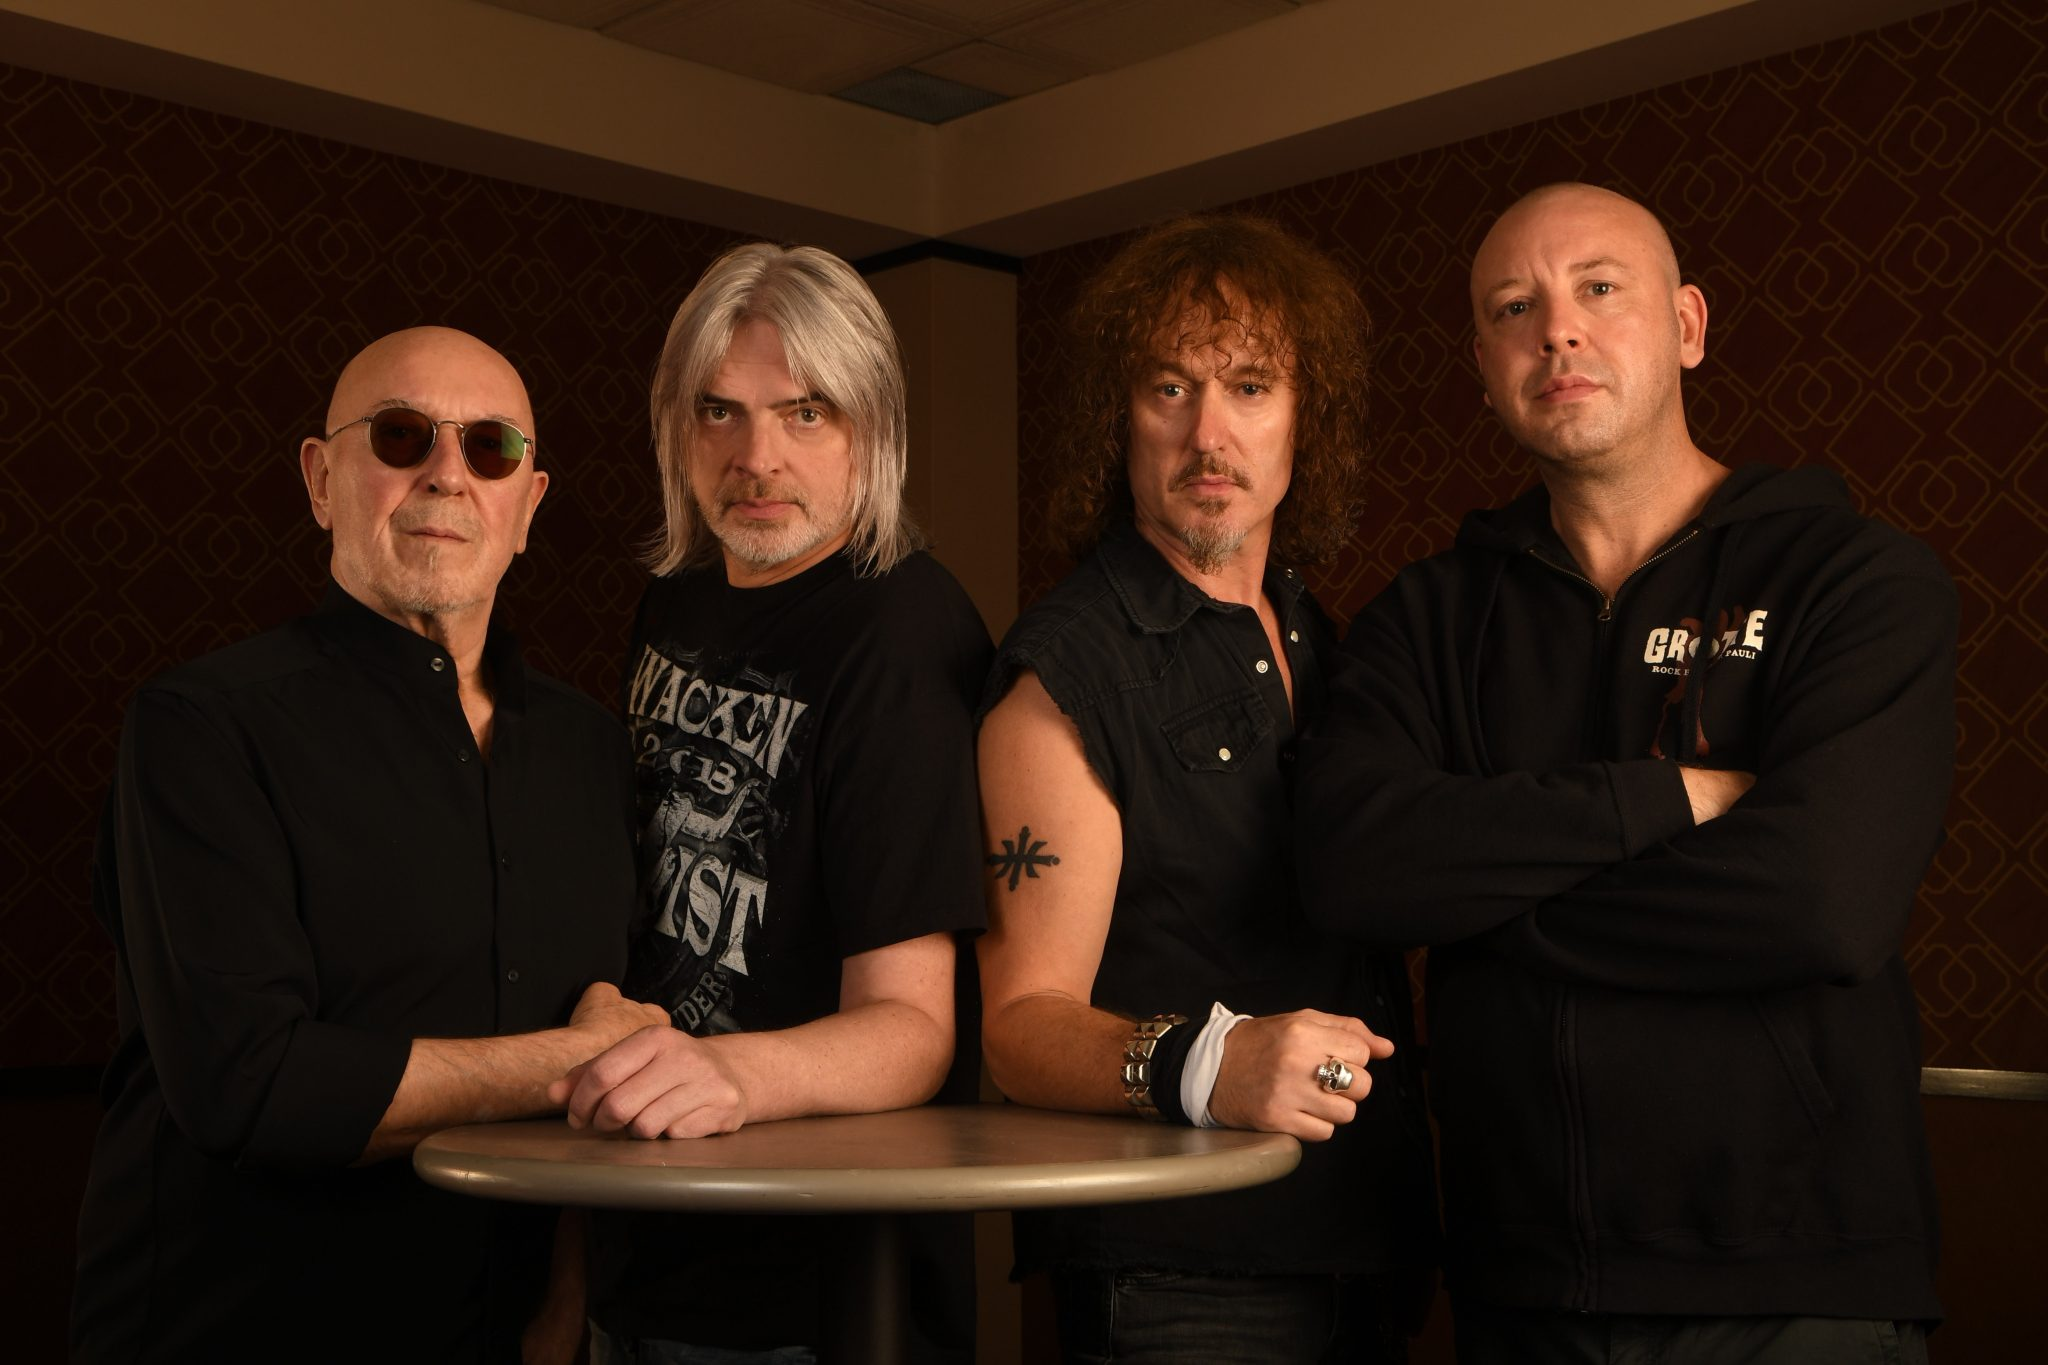 Nazareth - Pete Agnew, Jimmy Murrison, Carl Sentance and Lee Agnew. Photo by Calvin Fehr